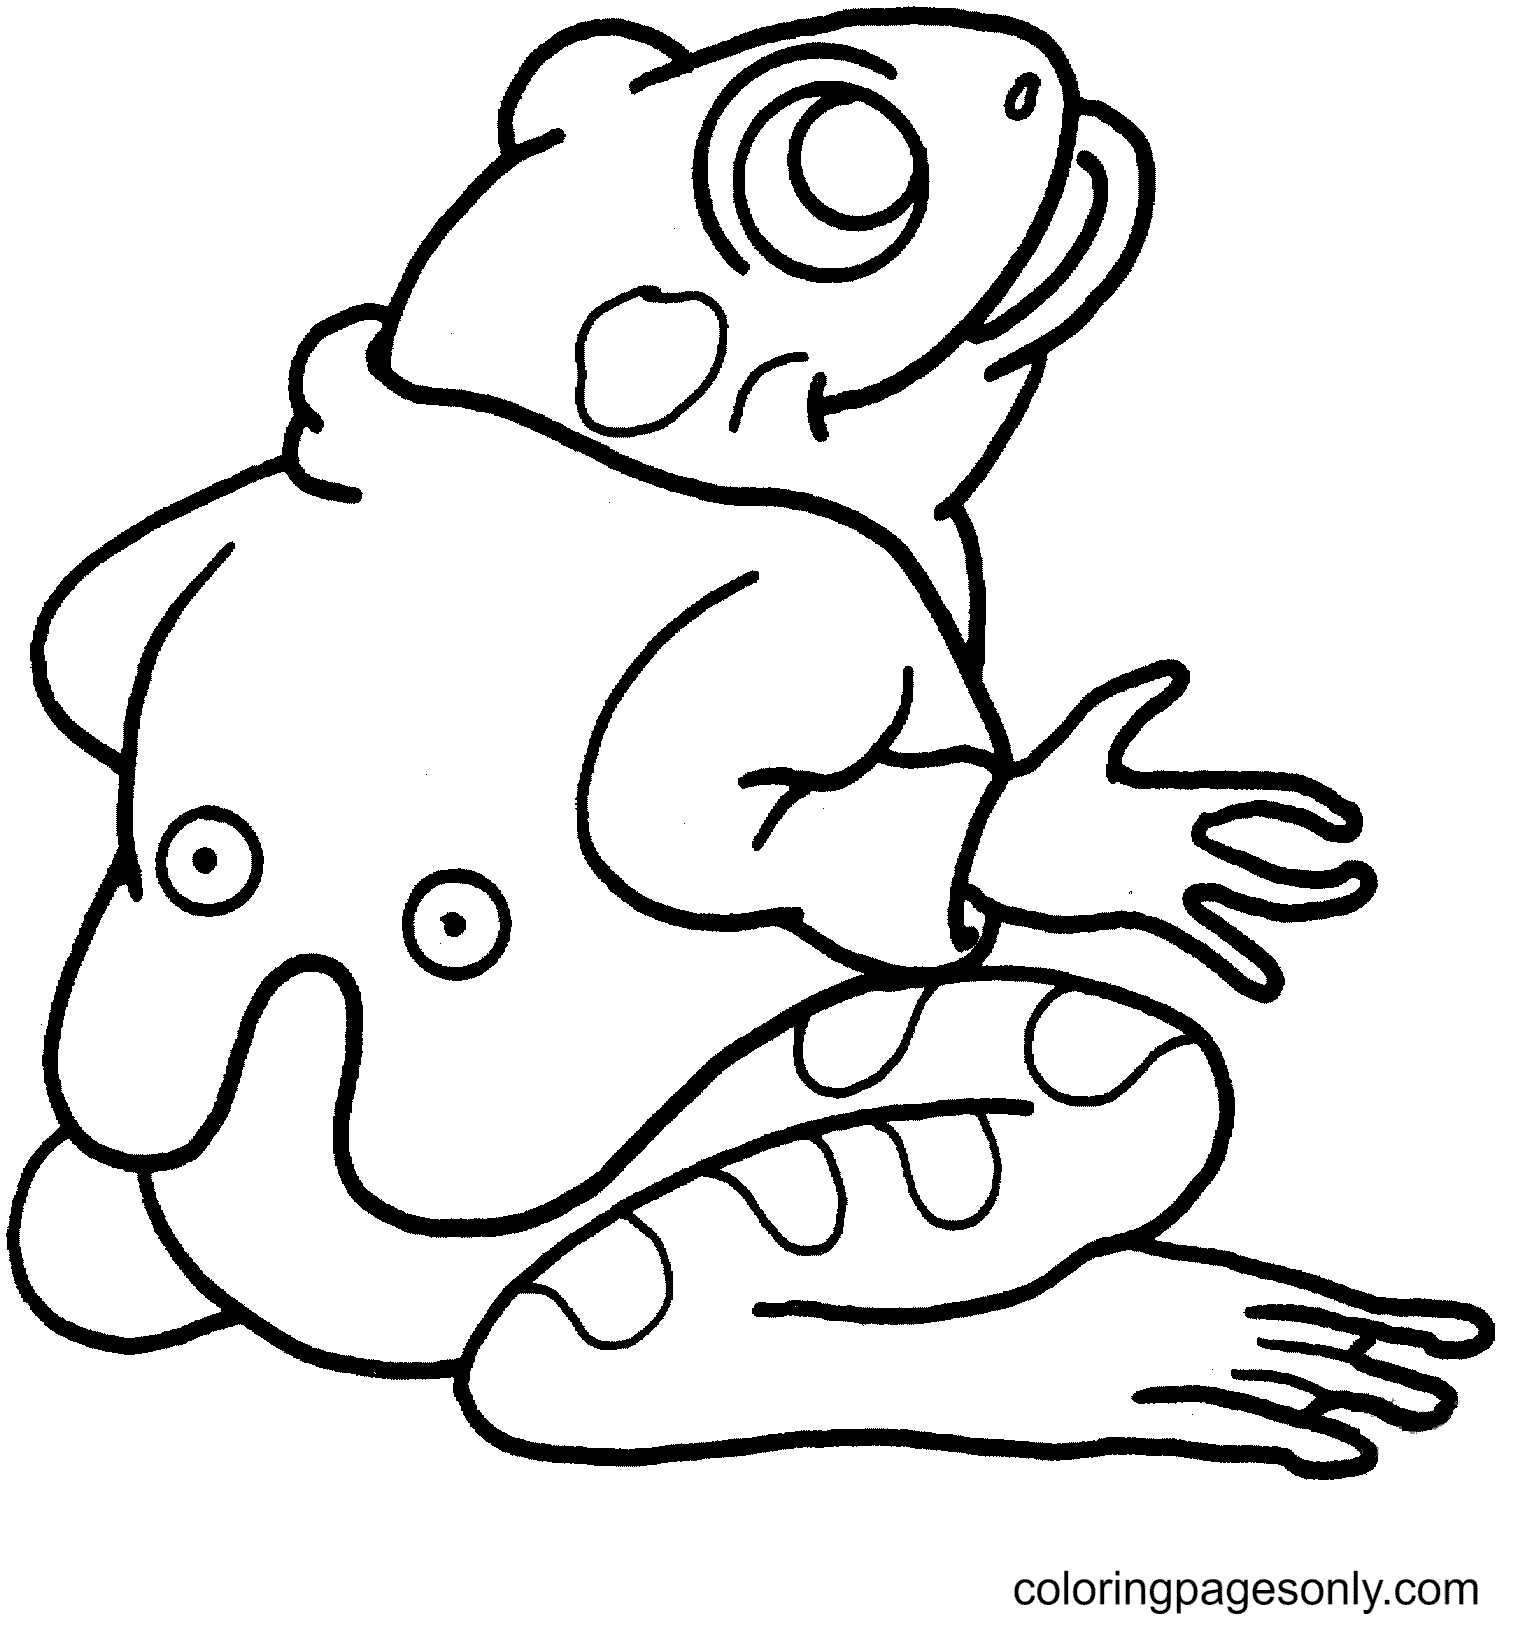 Frog in a Cute Vest Coloring Page